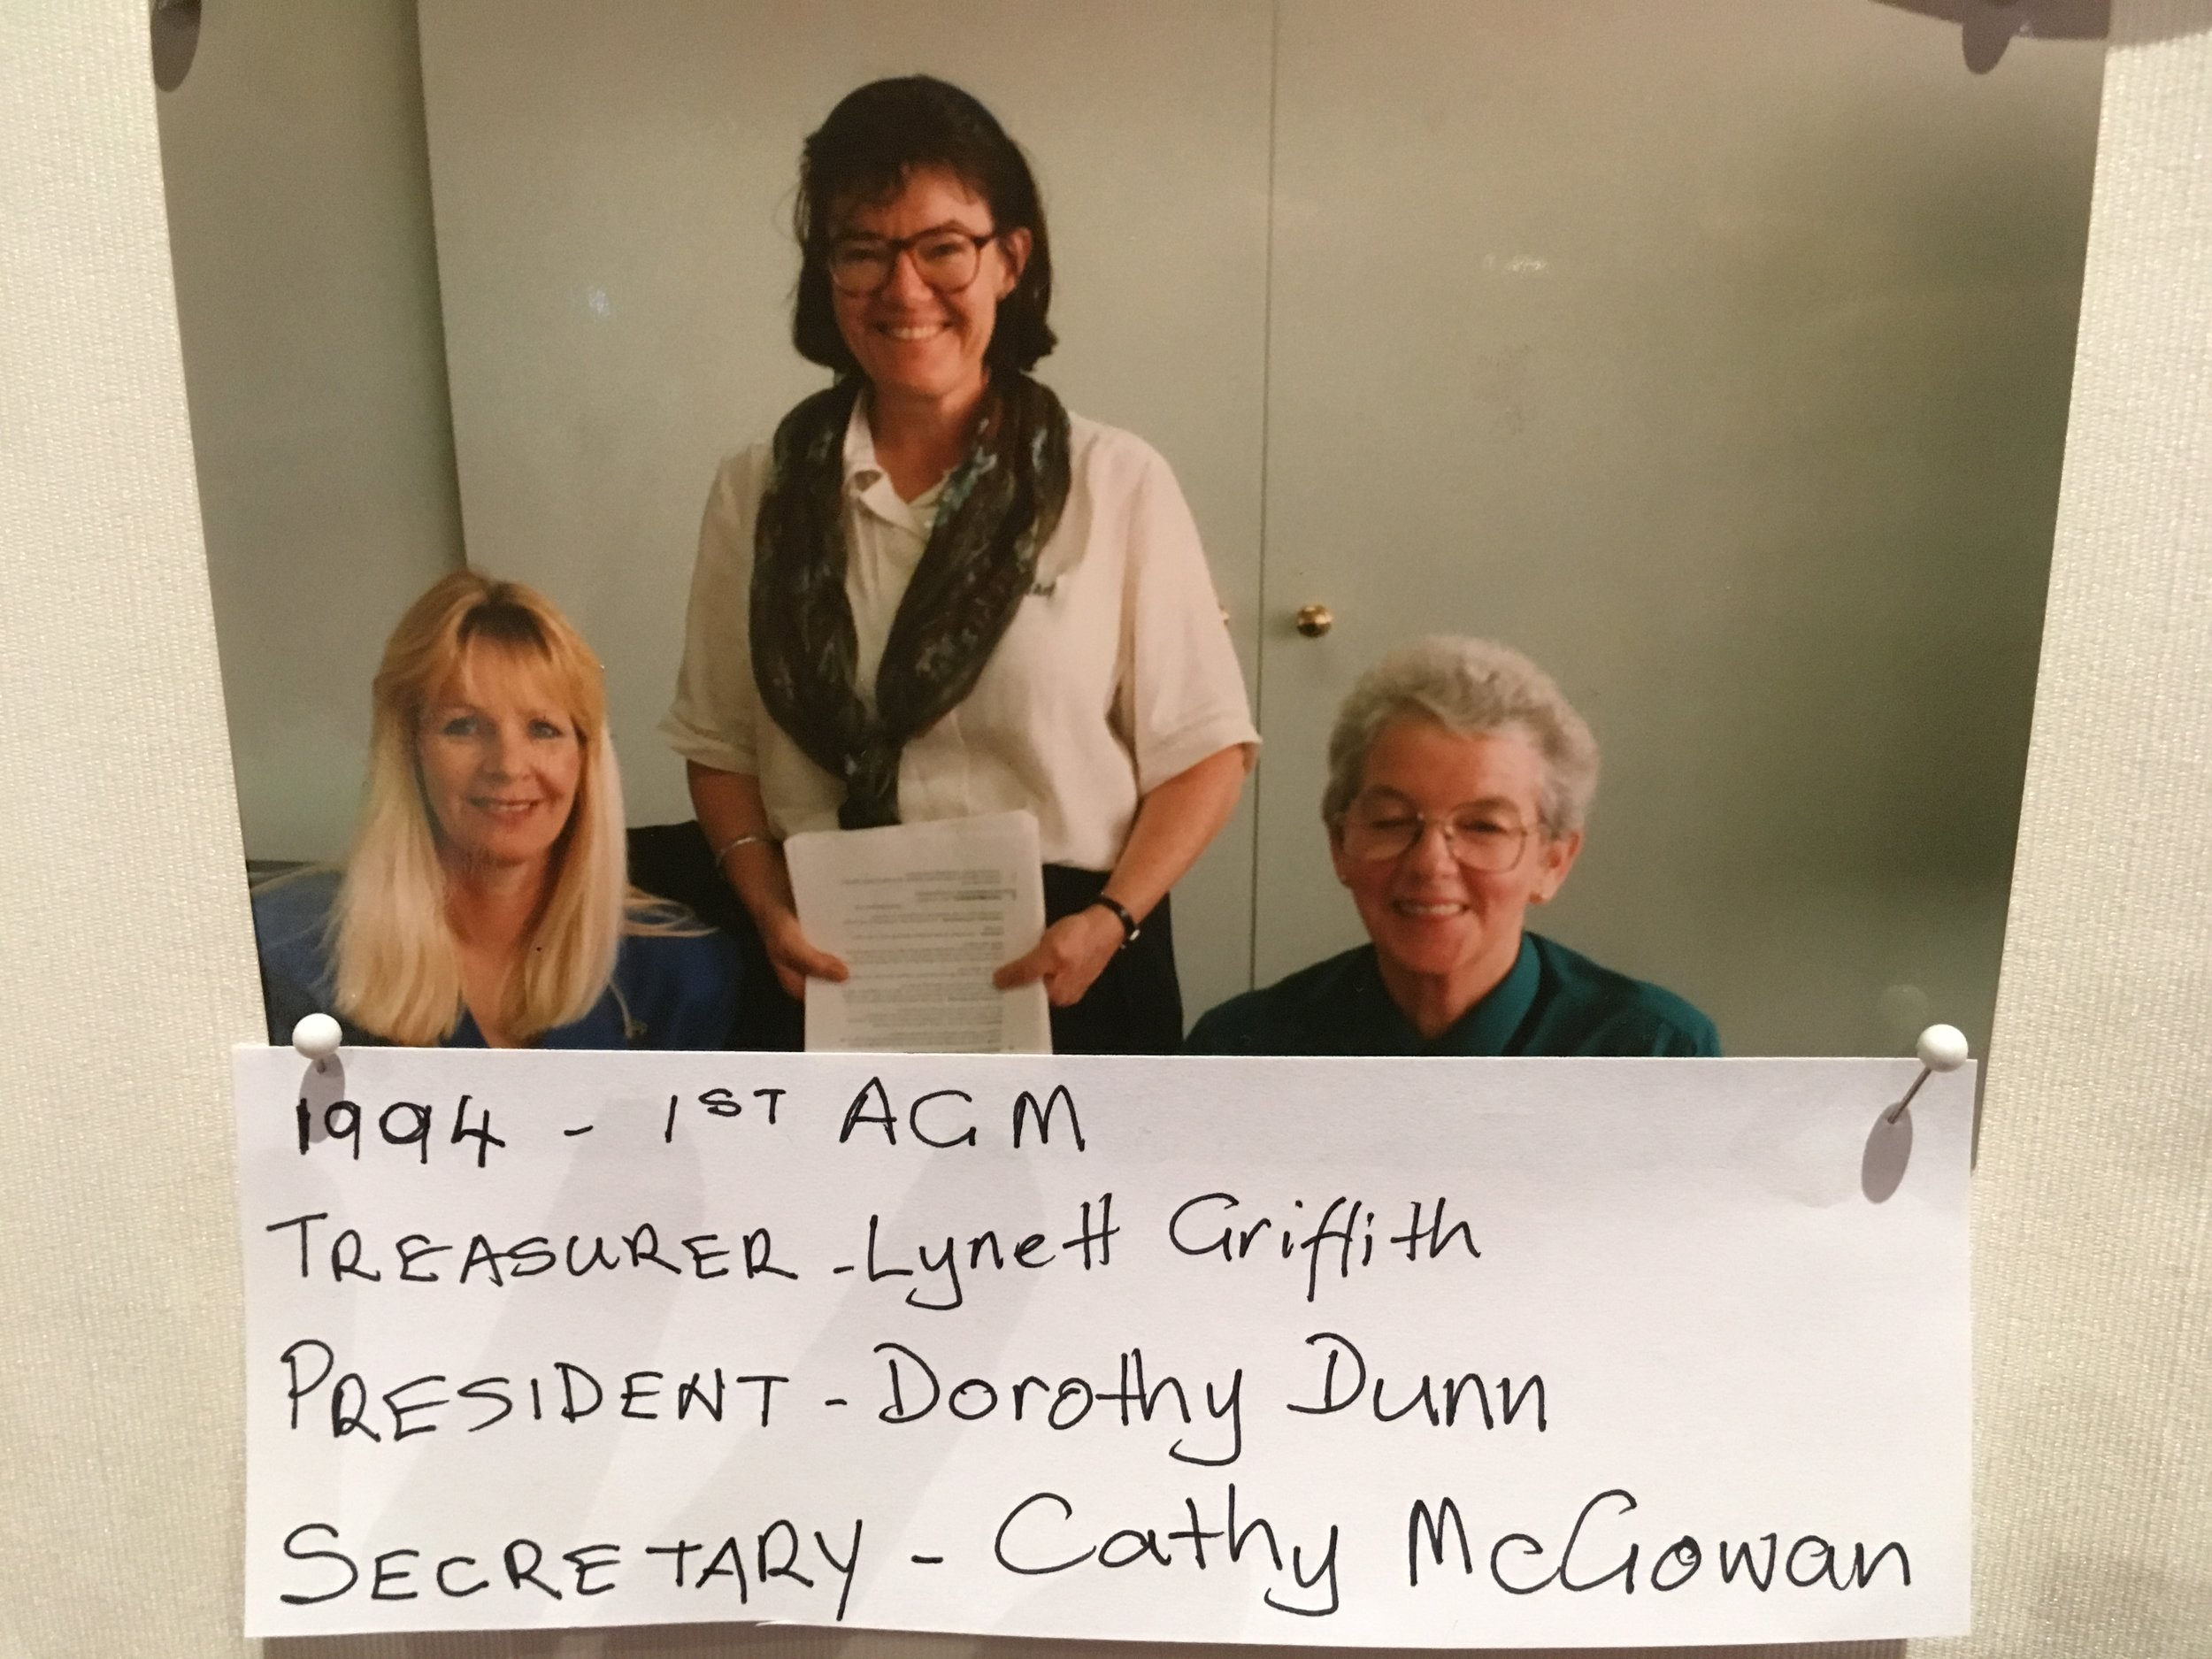 A photo depicting founding AWiA members Lynett Griffith, Dorothy Dunn and Cathy McGowan in 1994. Photo: this photo was displayed in the conference foyer during the AWiA conference weekend, 17-19 August 2018.